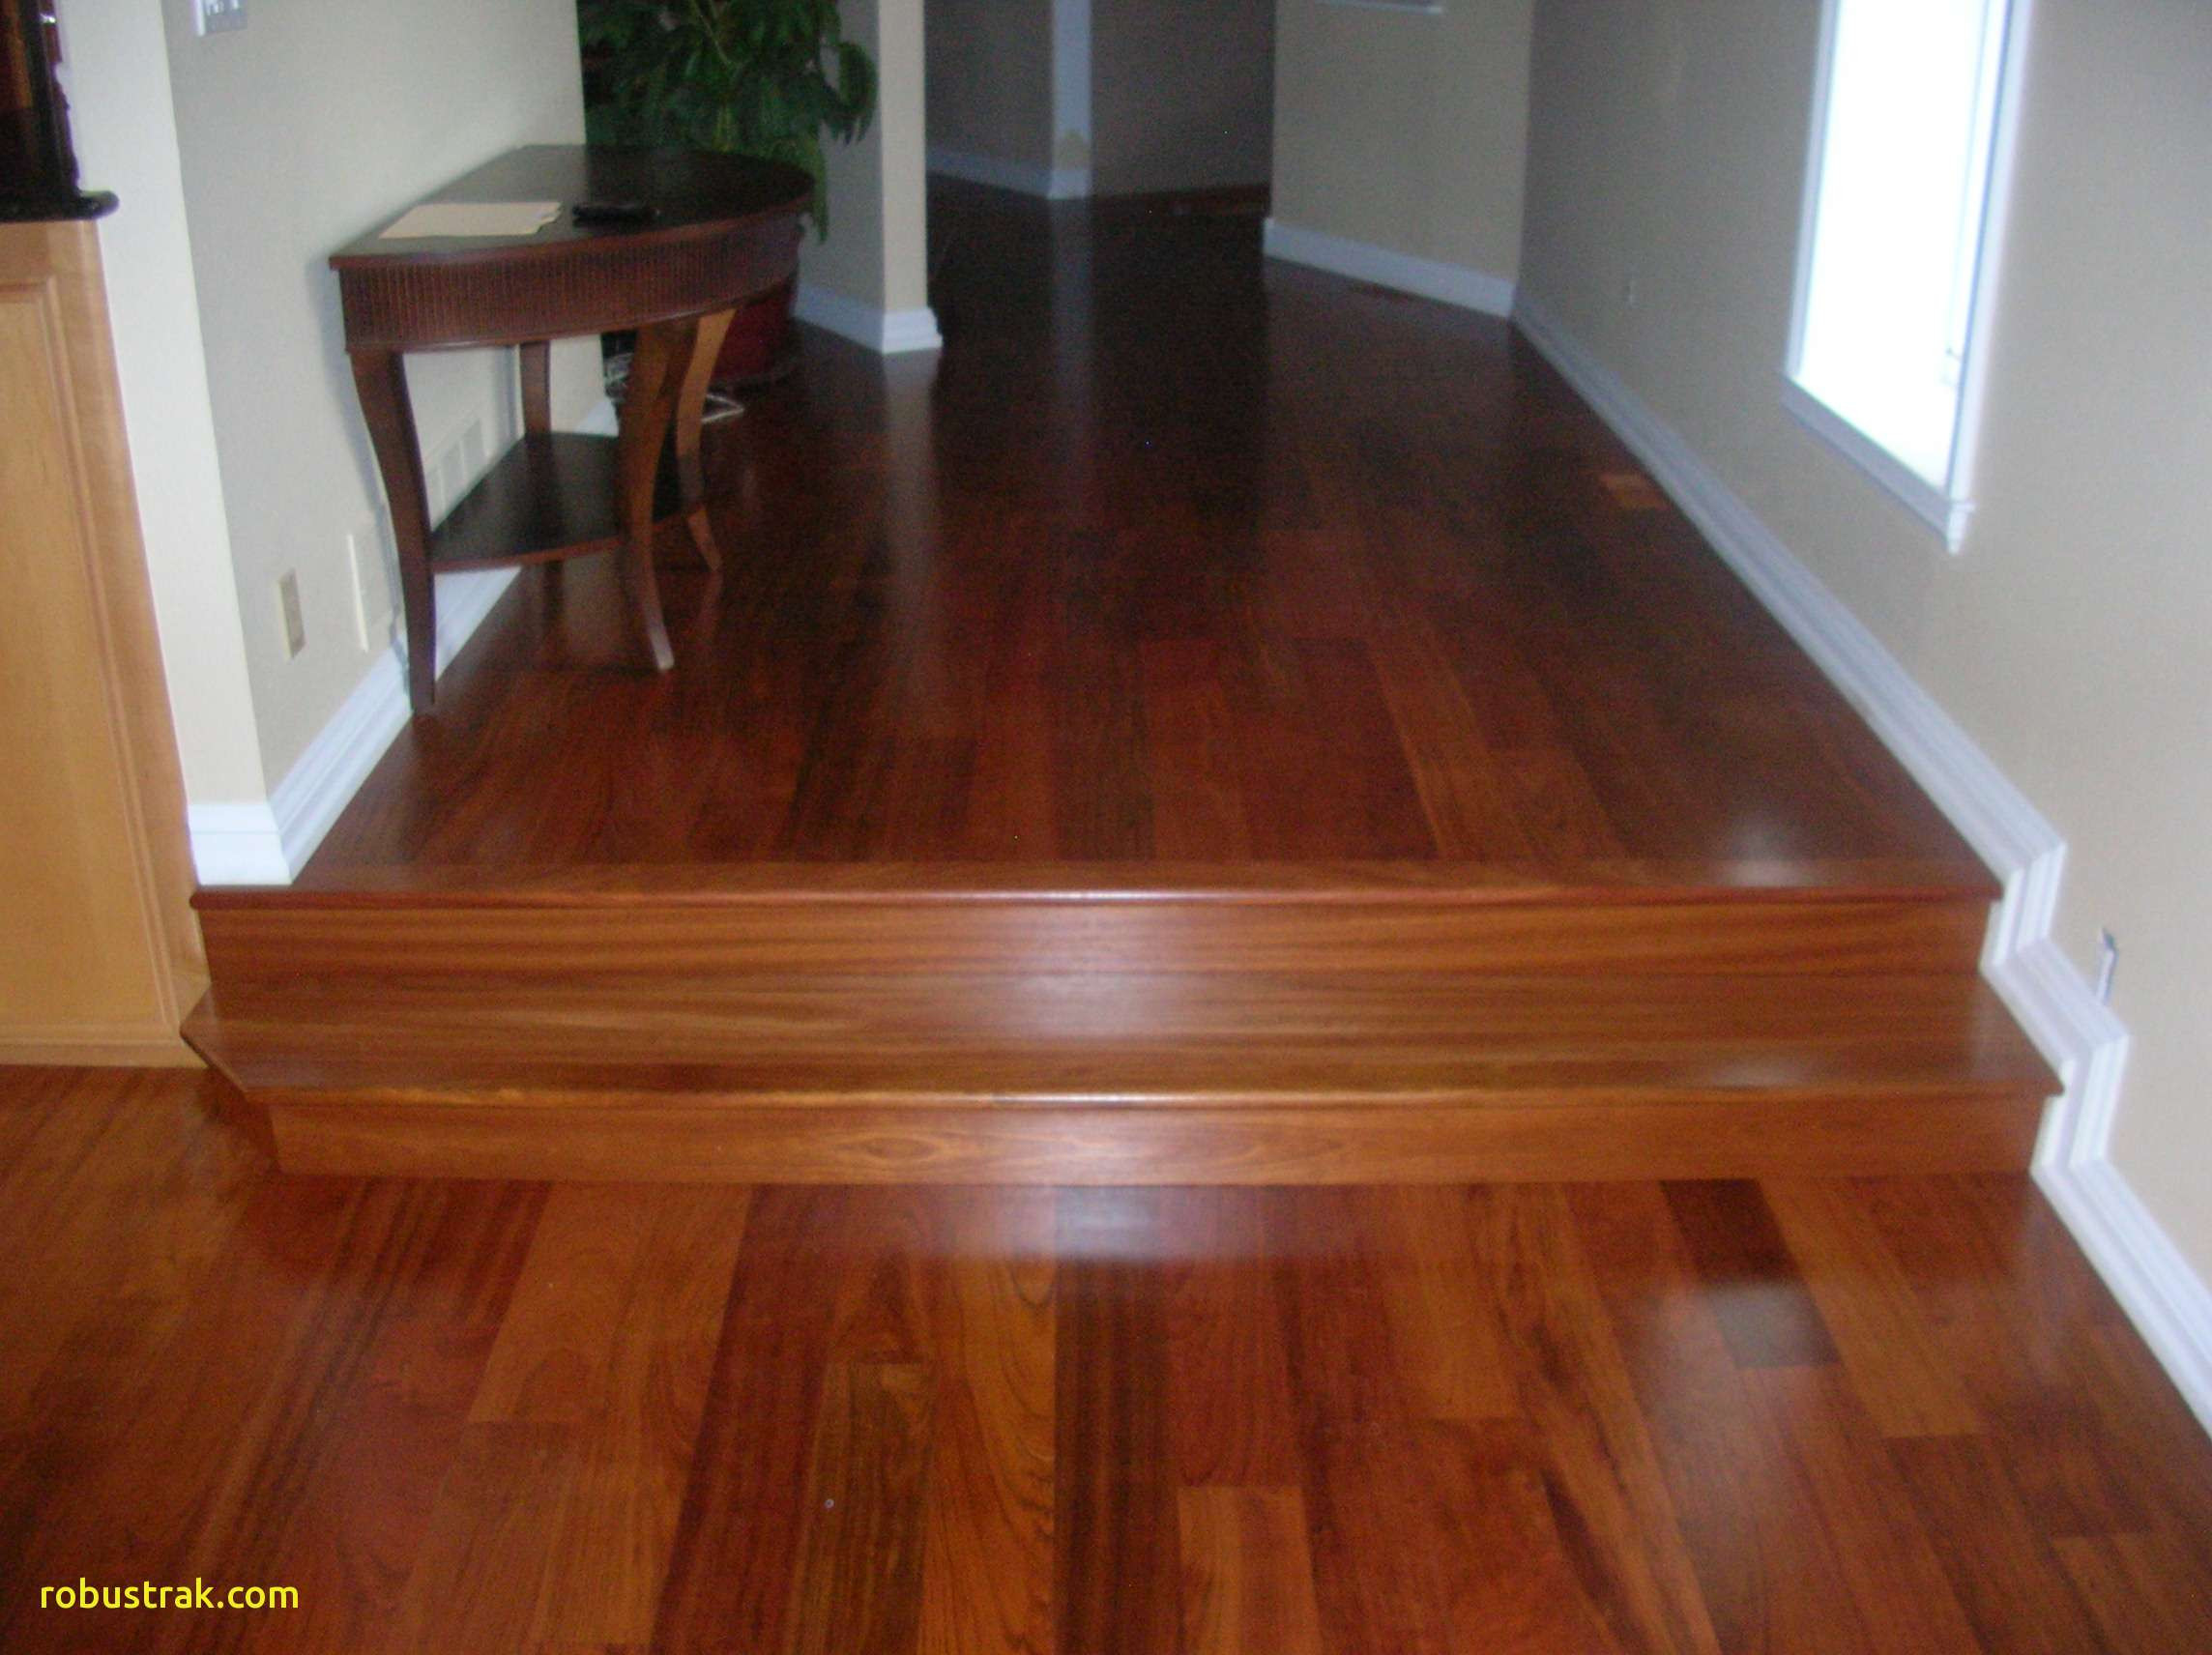 Hardwood Flooring Wiki Of Avalon Flooring Cherry Hill How to Make Wood Flooring Unique Tile Throughout Avalon Flooring Cherry Hill Carpet that Looks Like Wood